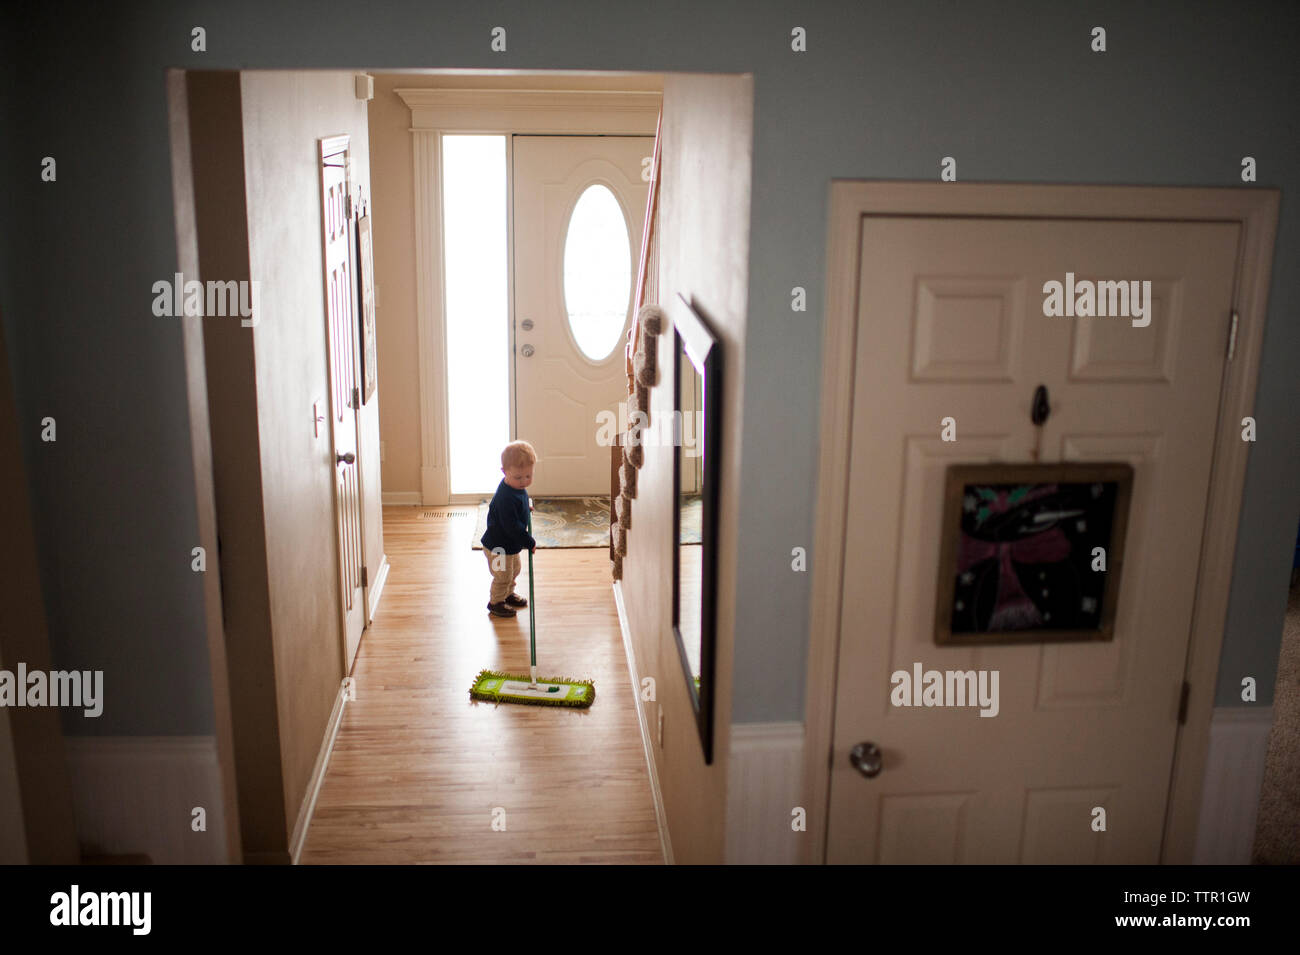 Baby boy wiping hardwood floor with mop at home - Stock Image